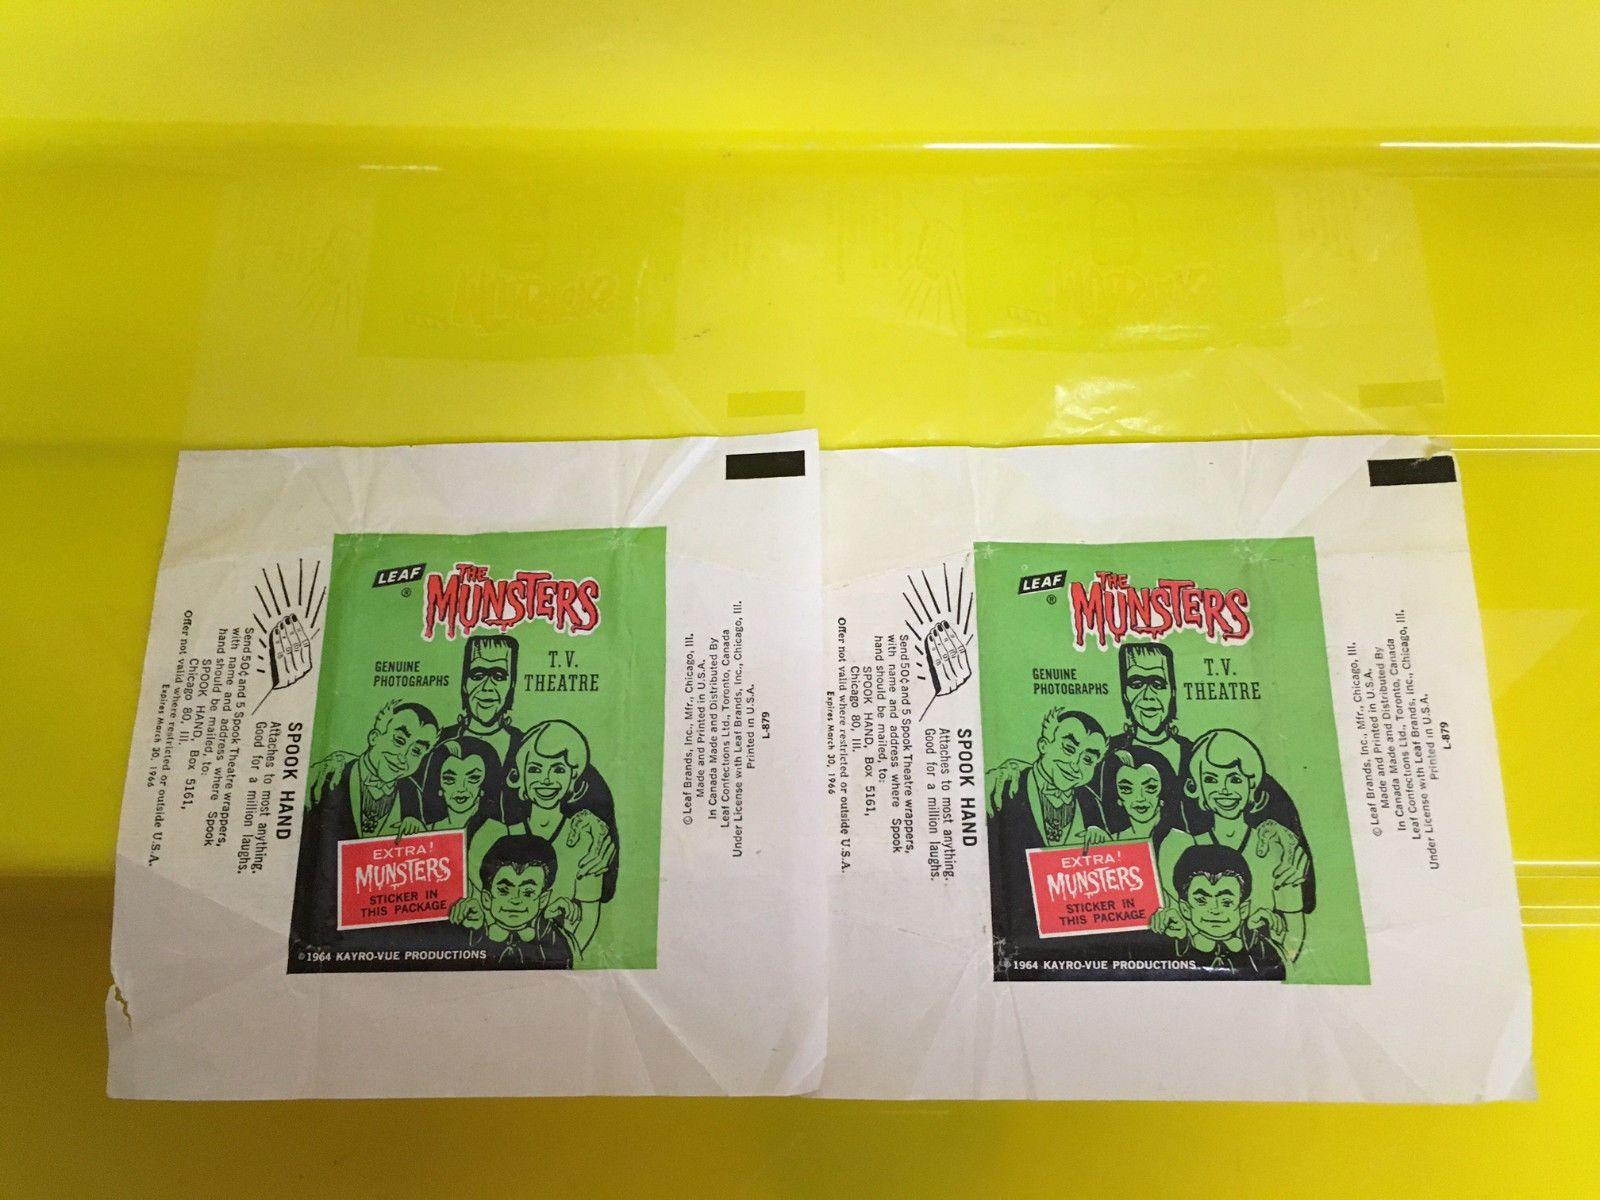 Creature from the Black Lagoon 168249: 2 0Riginal1960 S Munsters Trading Cards Wrapper, Great Condition Leaf -> BUY IT NOW ONLY: $50 on eBay!